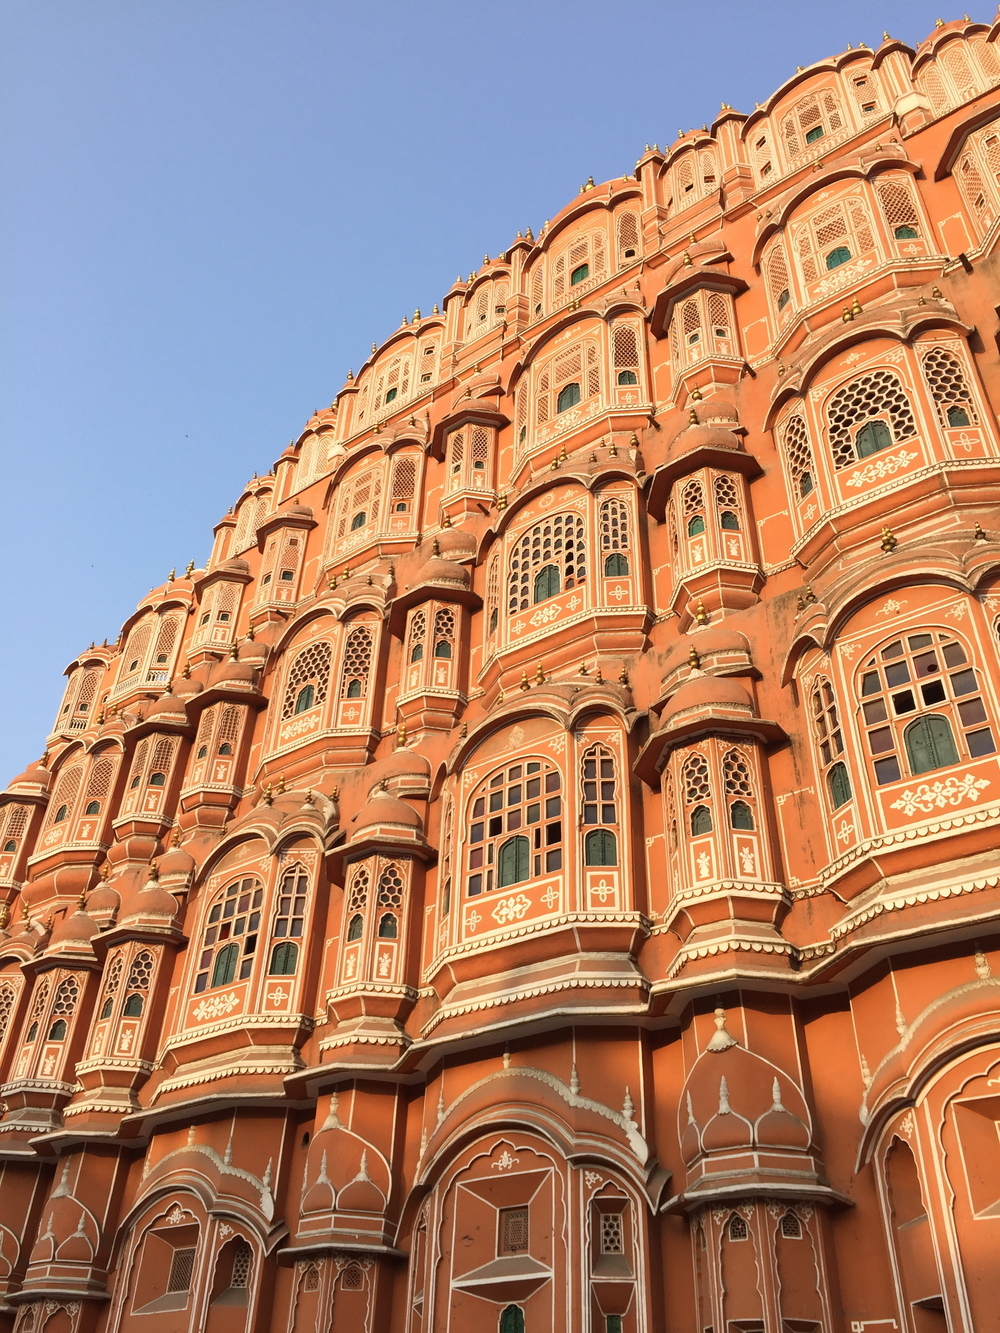 Palace of the Winds, Jaipur in late afternoon.